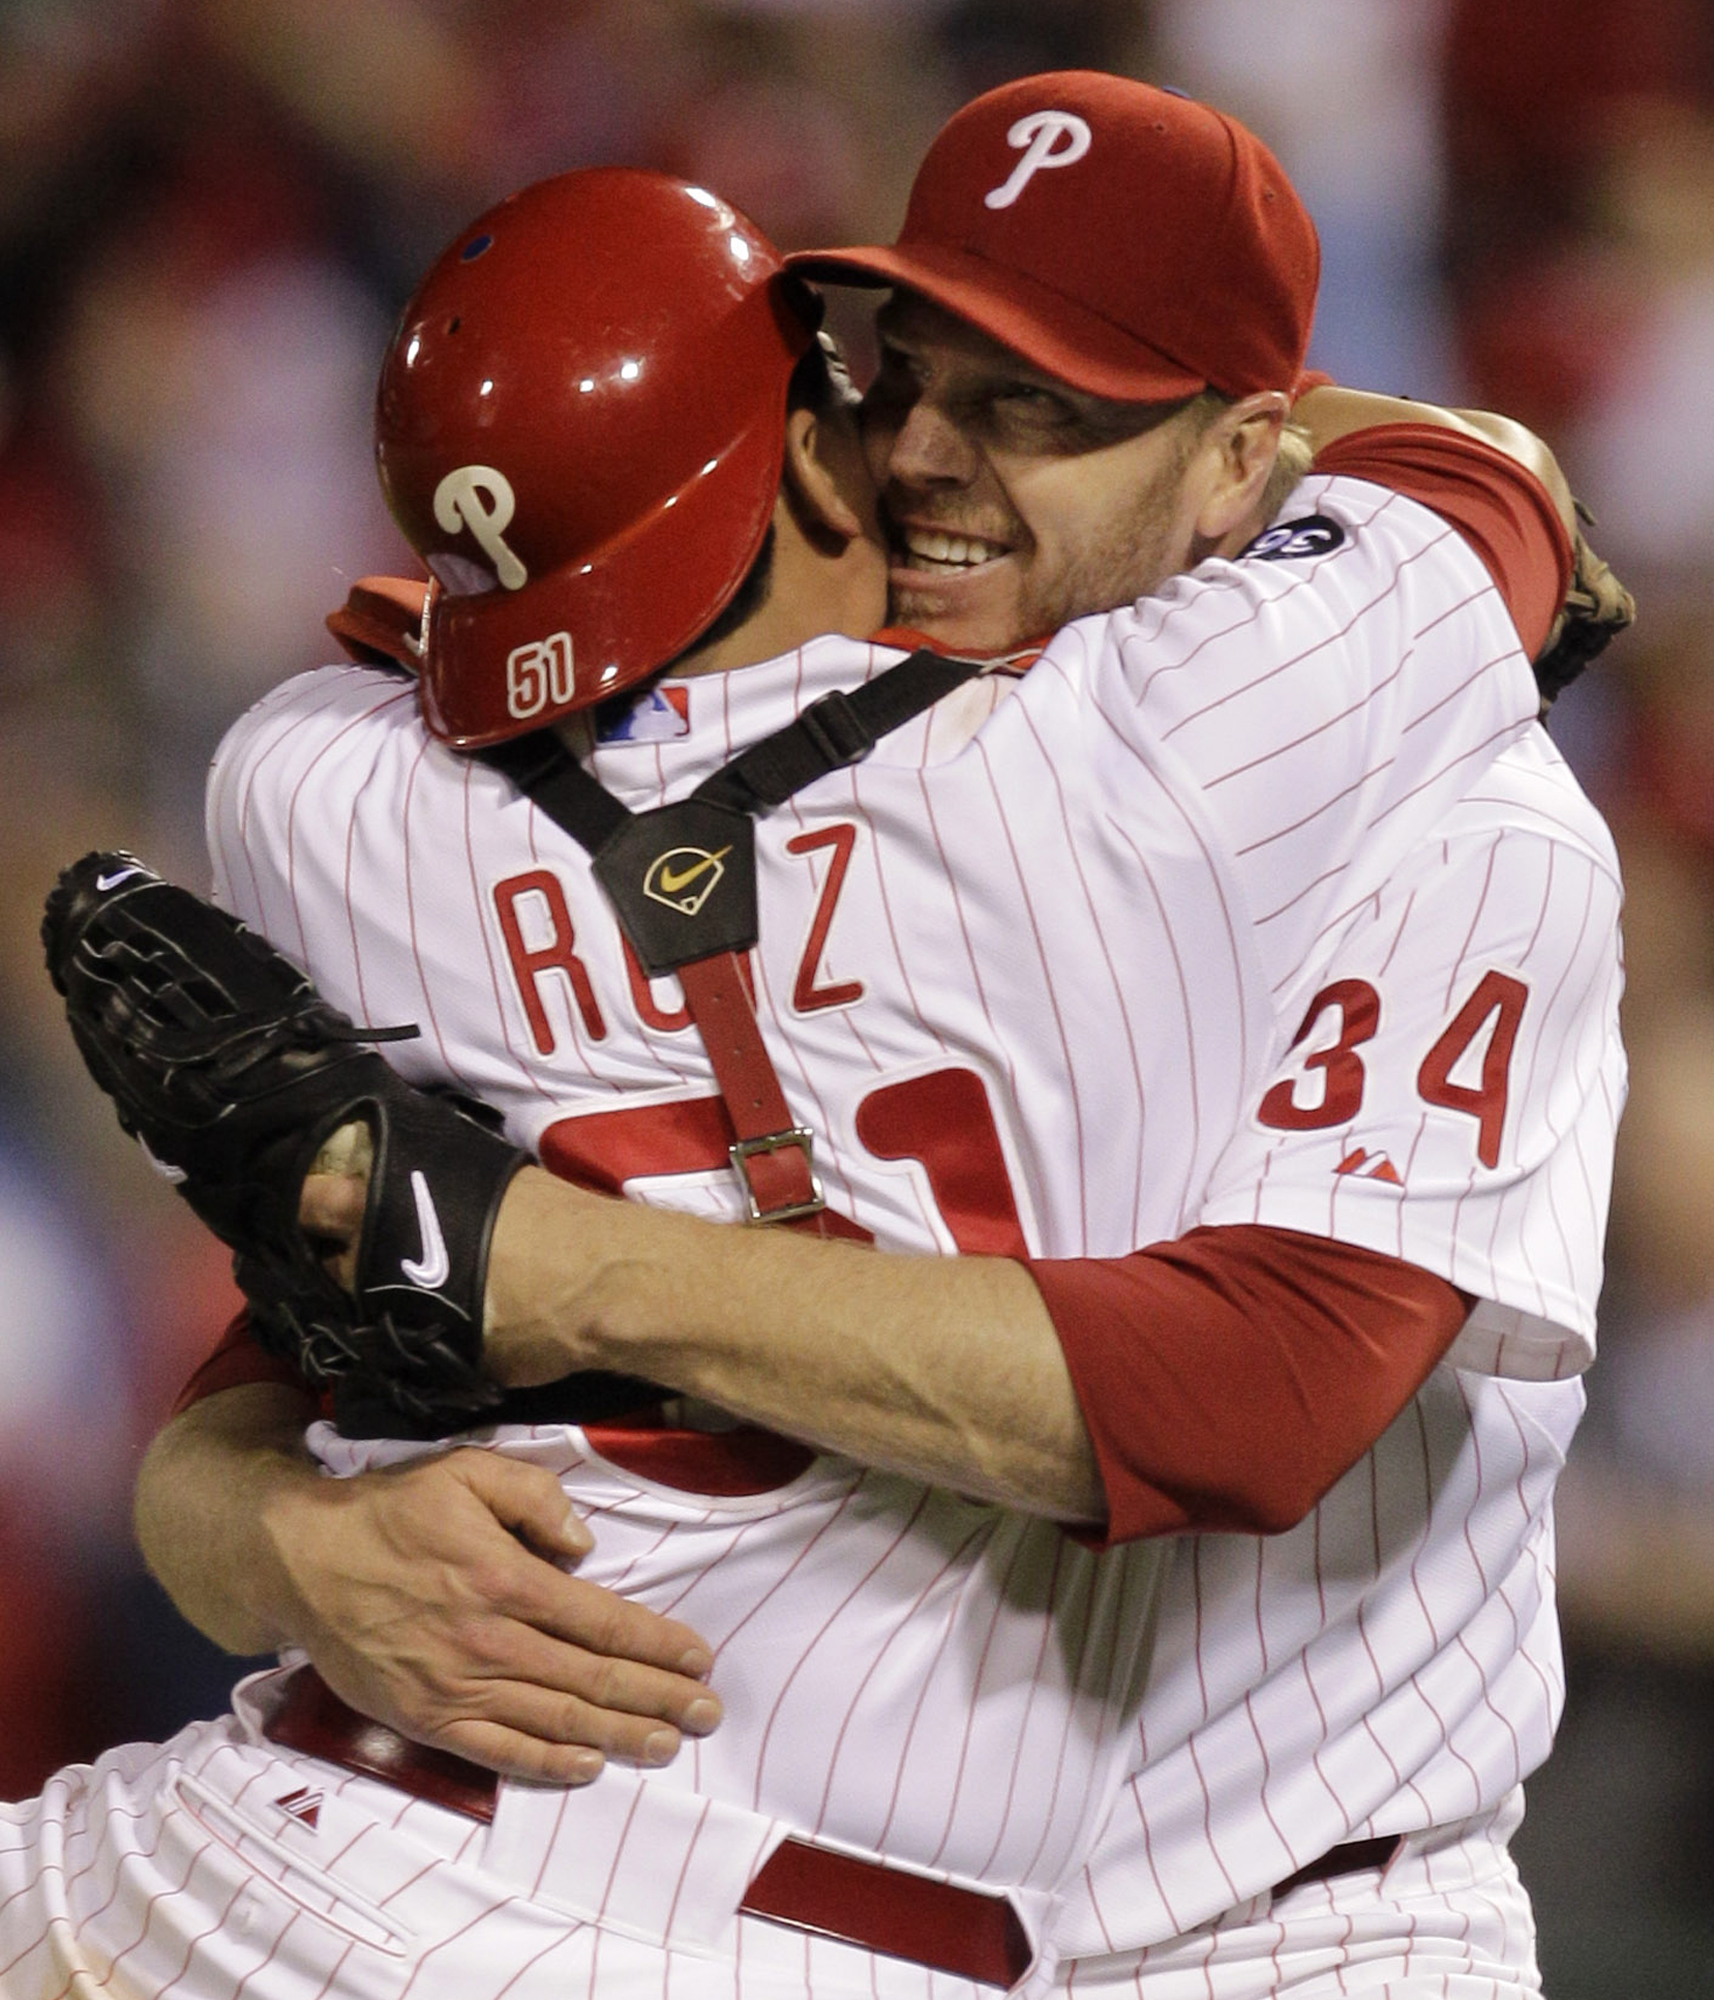 "<div class=""meta image-caption""><div class=""origin-logo origin-image ap""><span>AP</span></div><span class=""caption-text"">Roy Halladay and Carlos Ruiz celebrate after Halladay's playoff no-hitter against the Reds in 2010.</span></div>"